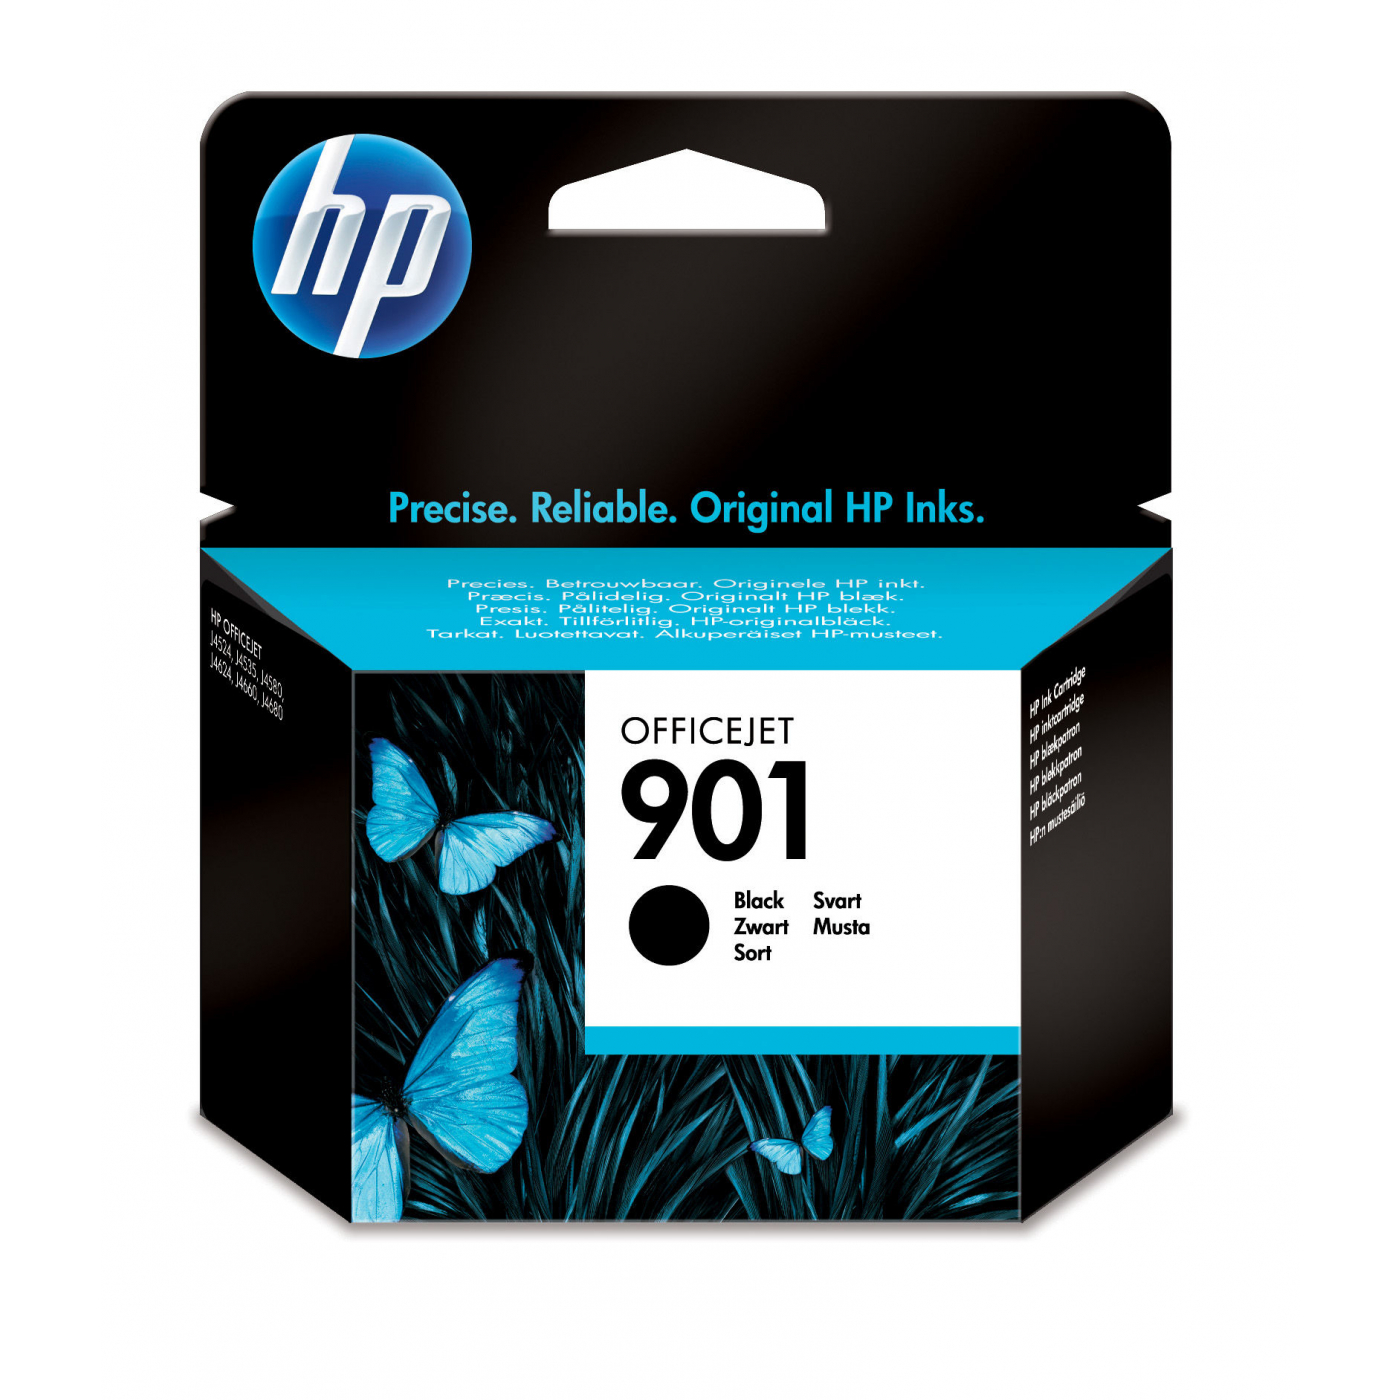 INK CART HP 901 BLACK ORIGINAL @ (Available On Order Only)